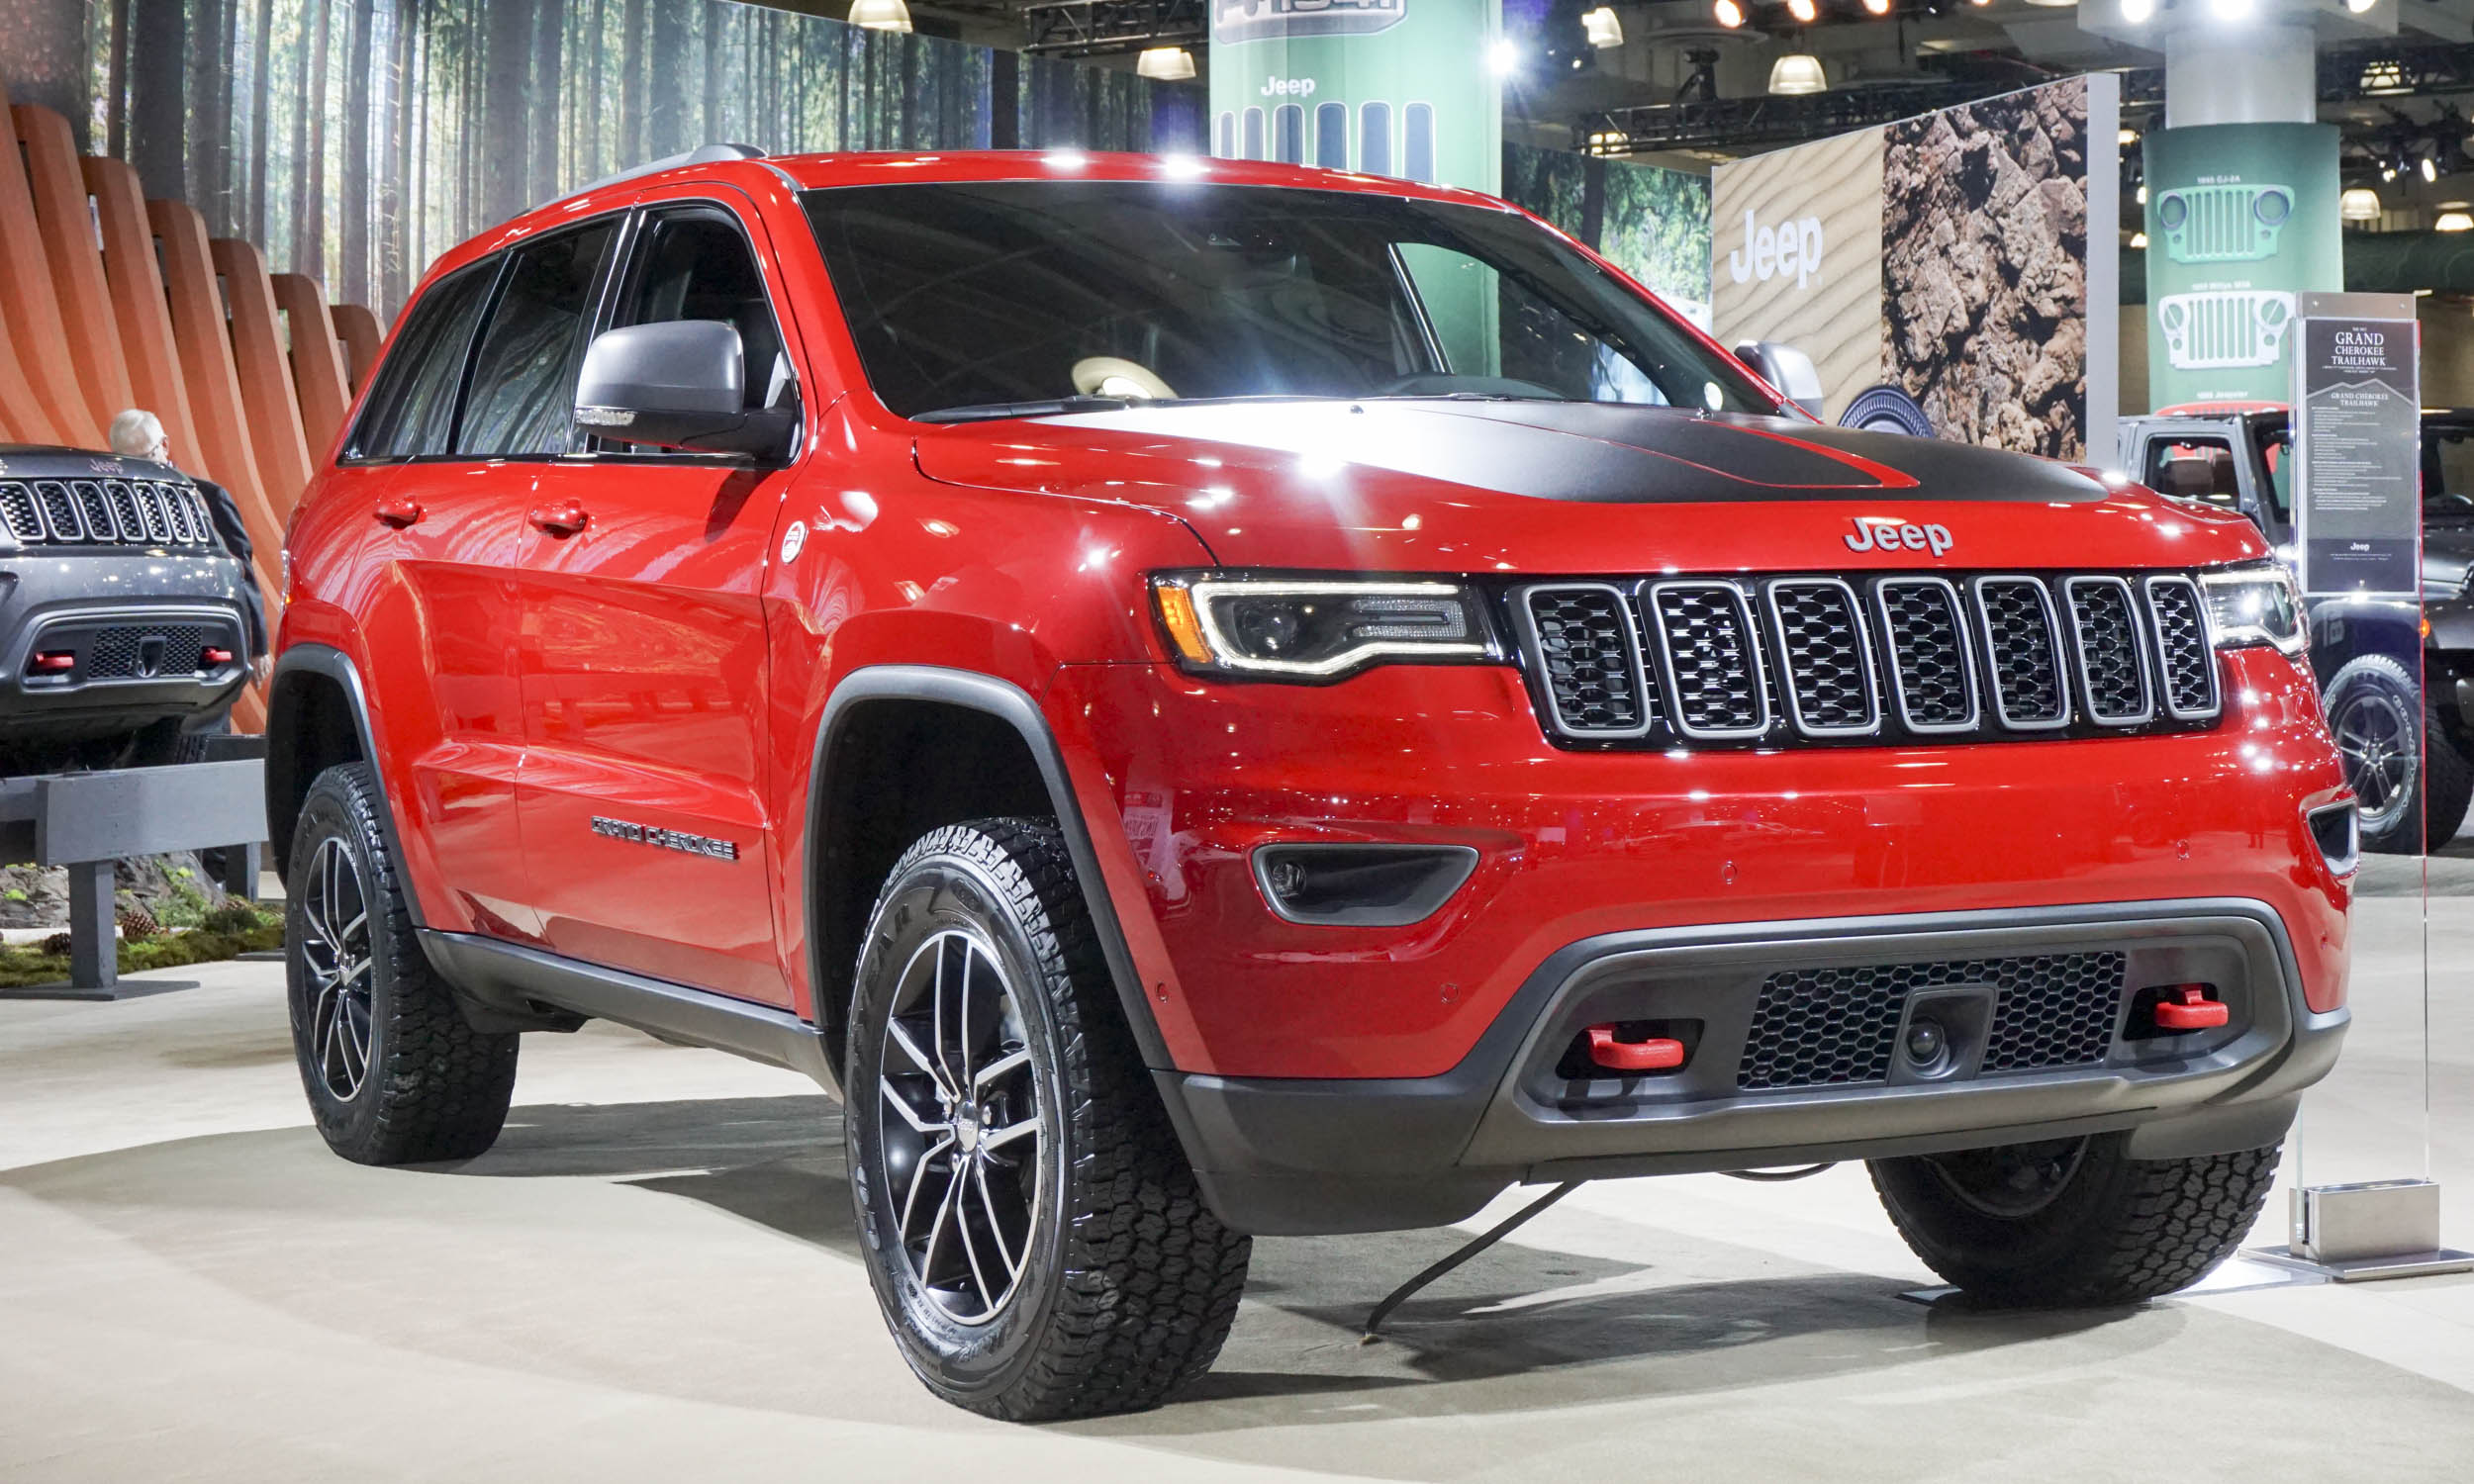 2018 jeep grand cherokee trailhawk car photos catalog 2018. Black Bedroom Furniture Sets. Home Design Ideas